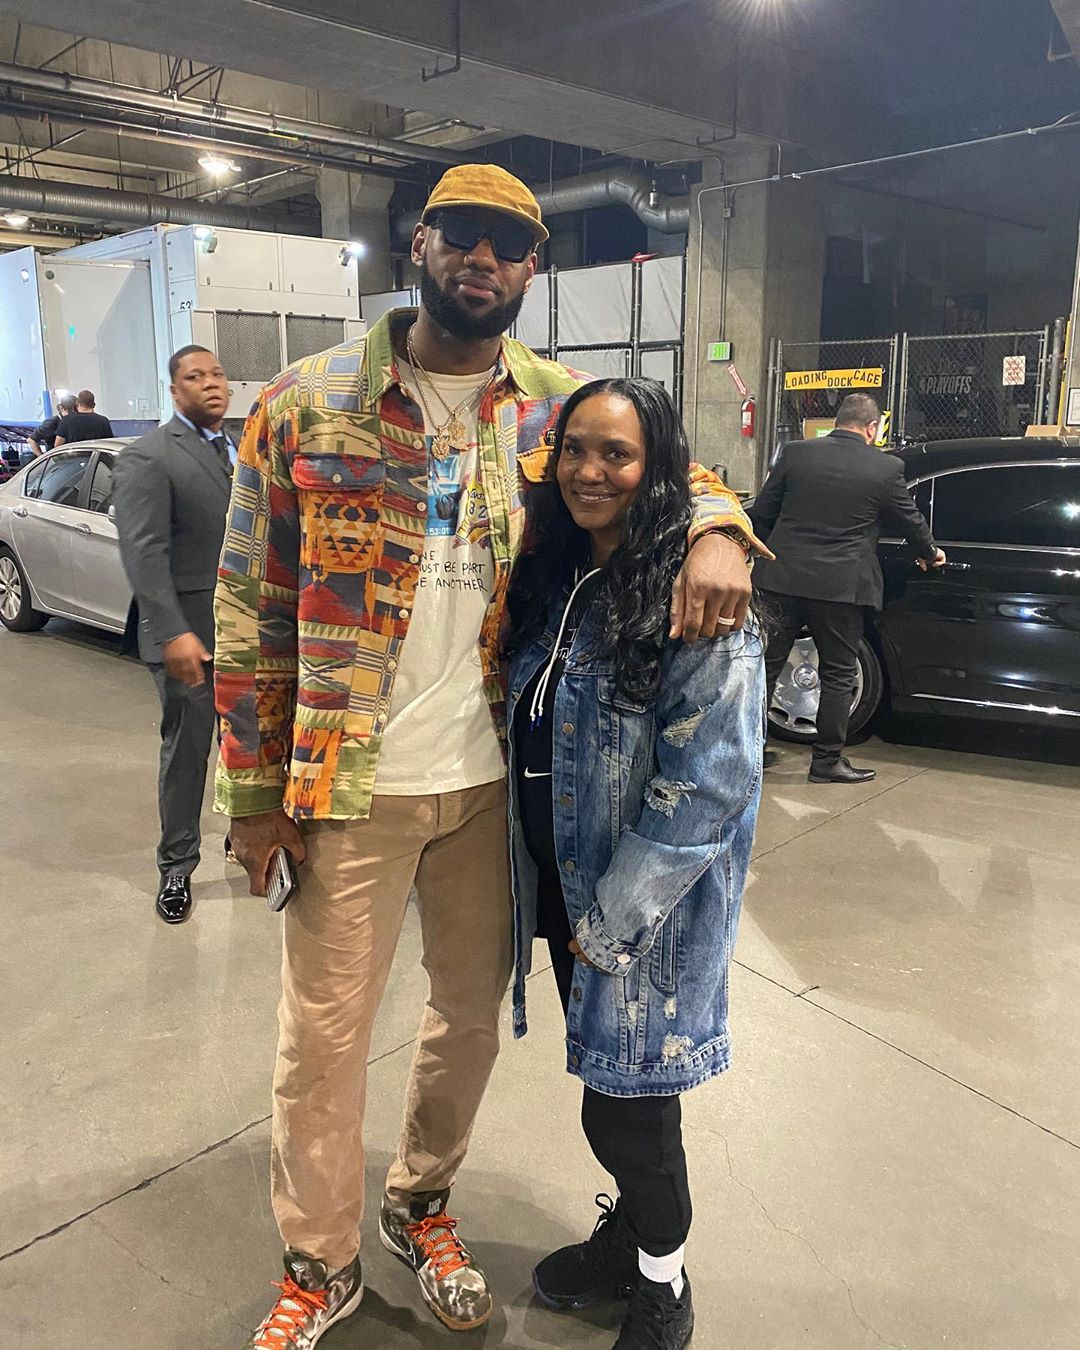 LeBron James Instagram: Welcome to the dirty 30s momma!! Happy 30th bday  beautiful Queen of all Queens!...